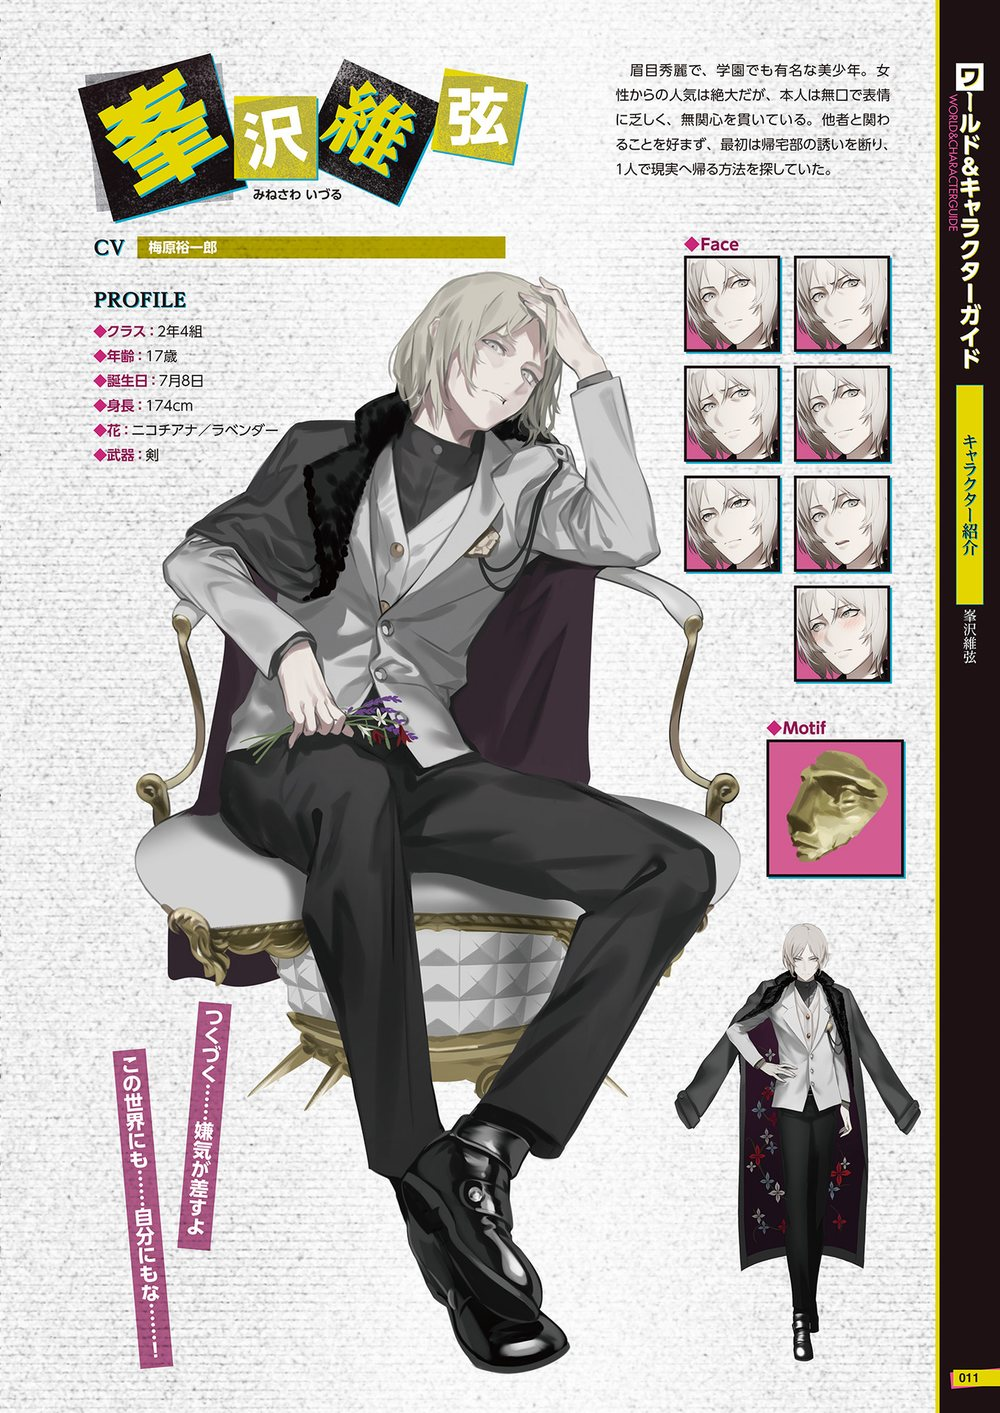 《卡里古拉过量The Caligula Effect Overdose》 (6).jpg